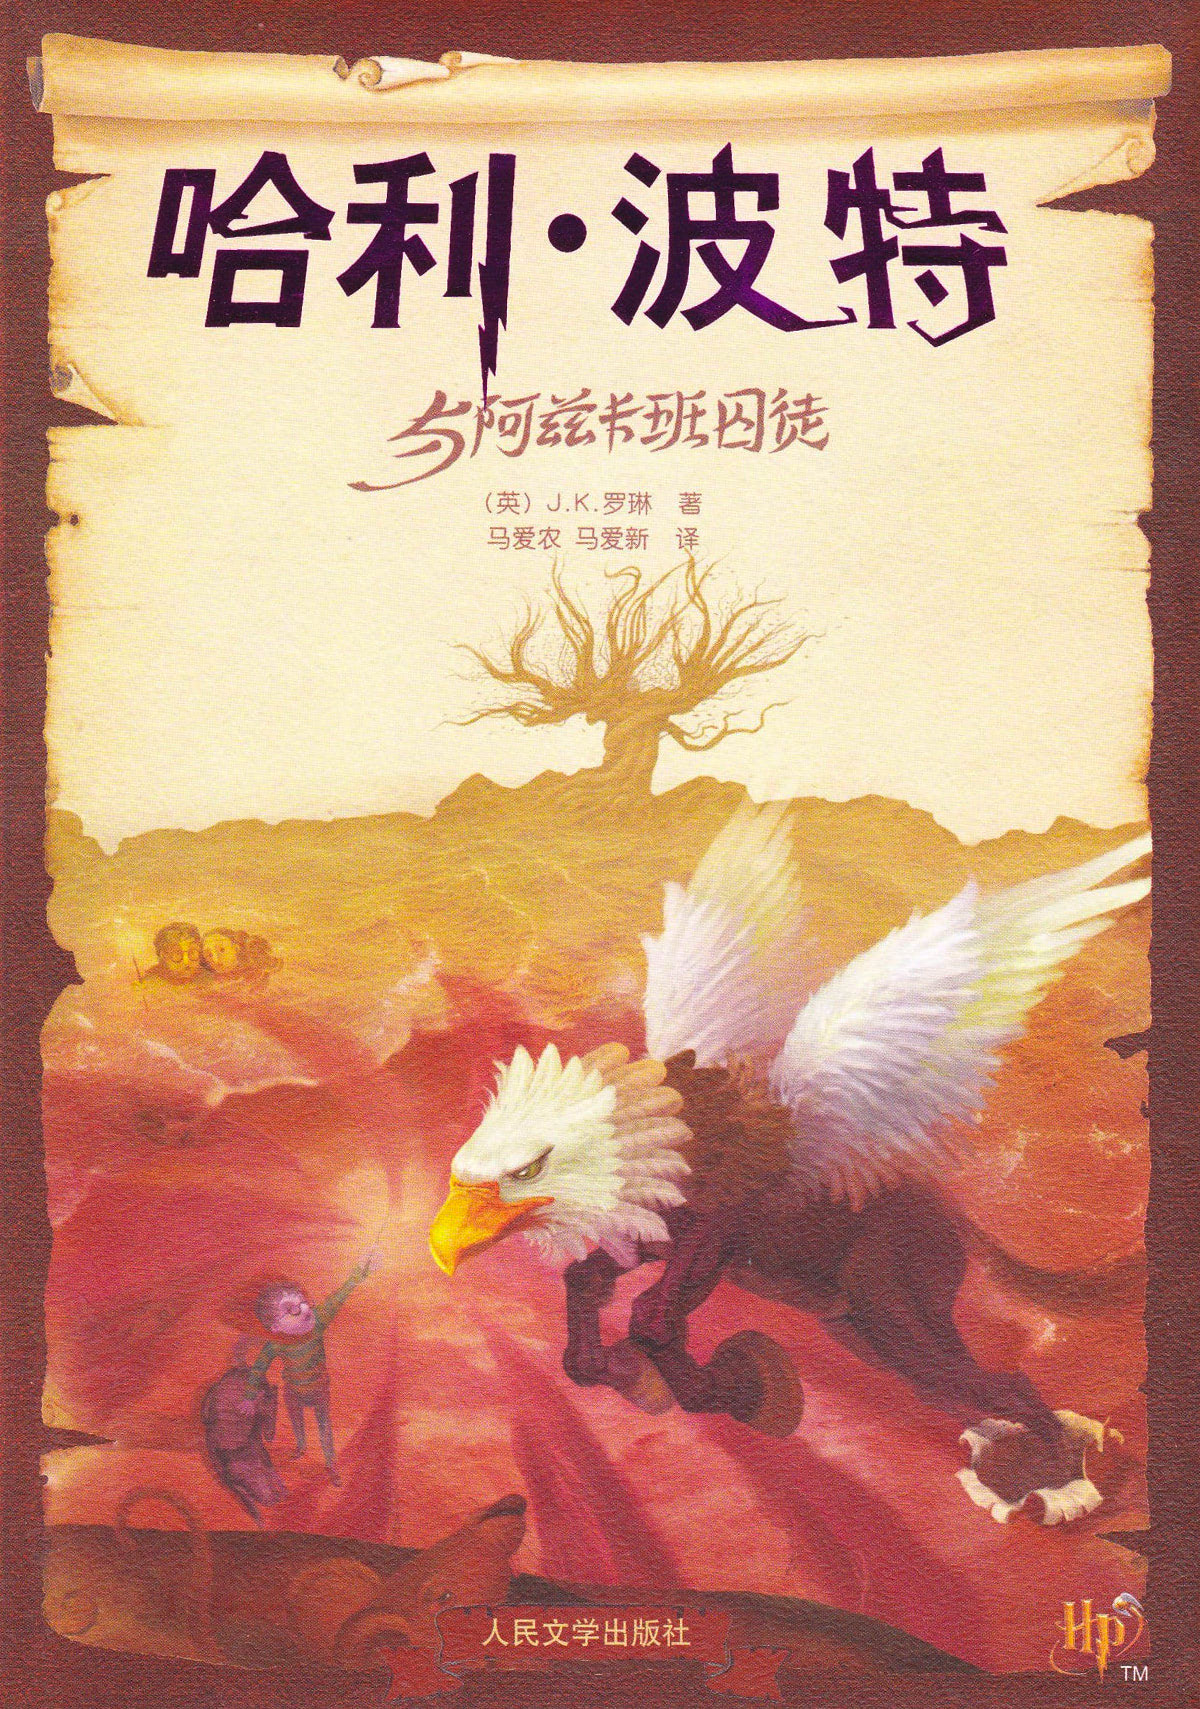 'Prisoner of Azkaban' Chinese collector's edition